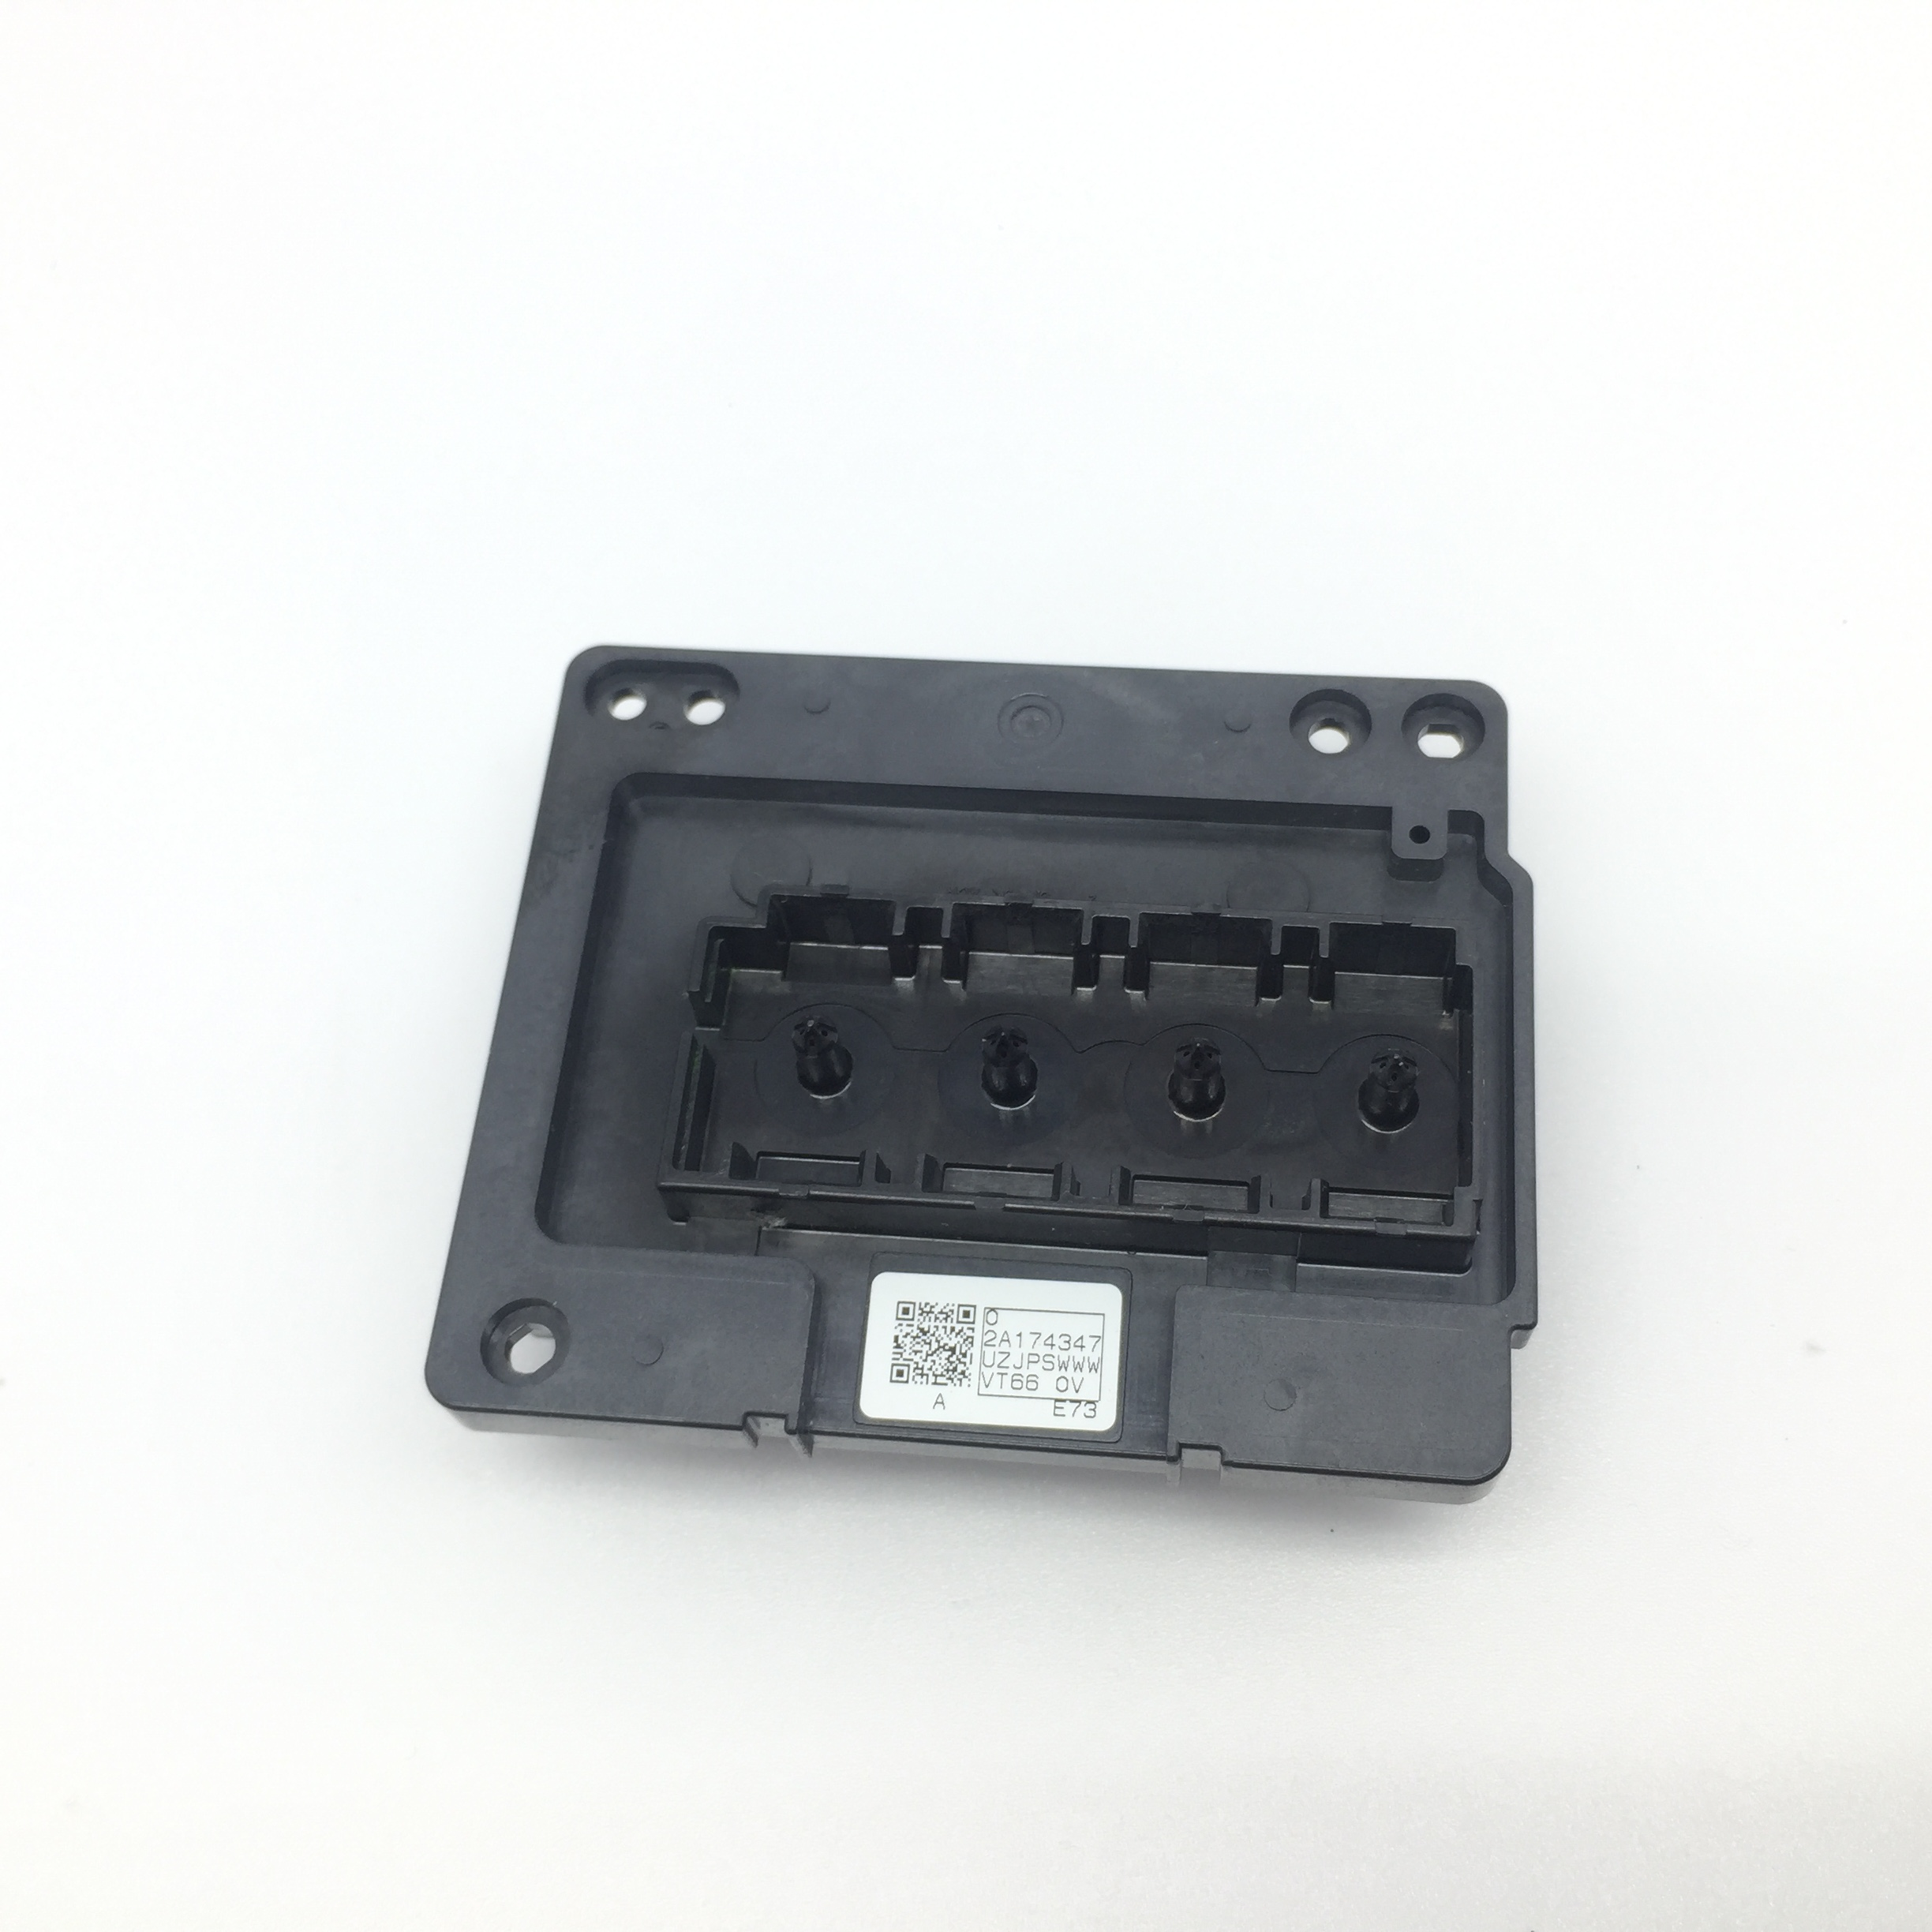 REFURBISHED brand for Epson WF-7620 WF 7620 7621 7610 nozzle print head 100% new original printhead print head for epson wf 7525 wf 7521 wf7520 wf 7515 wf 7511 wf 7510 7015 printer head printhead